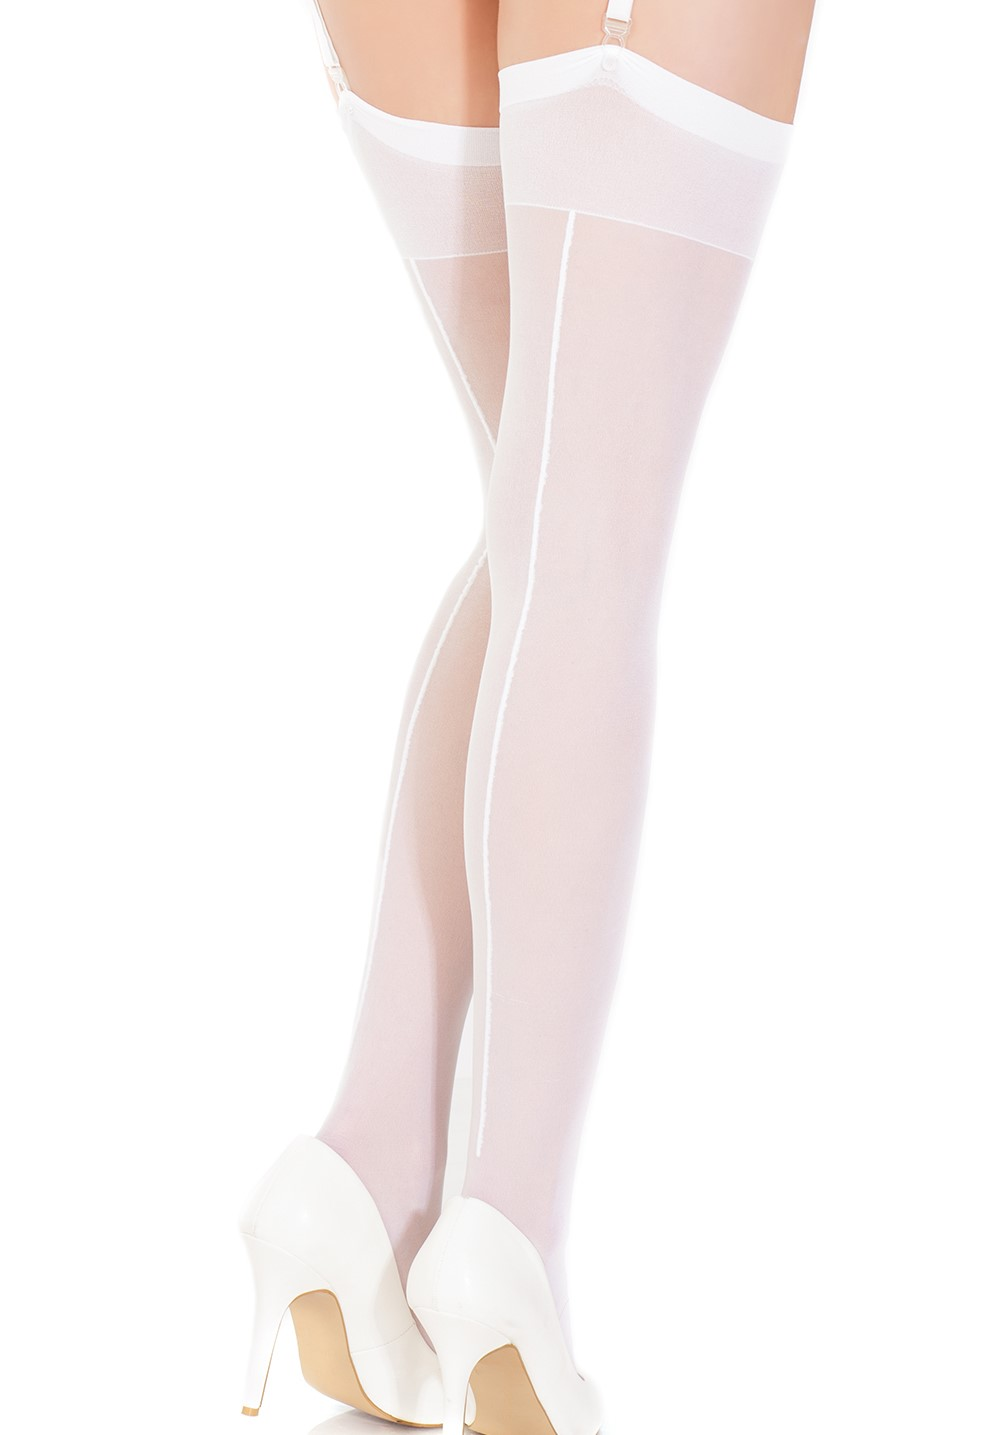 Vintage style sheer thigh high stockings back seam 1756 Edmonton